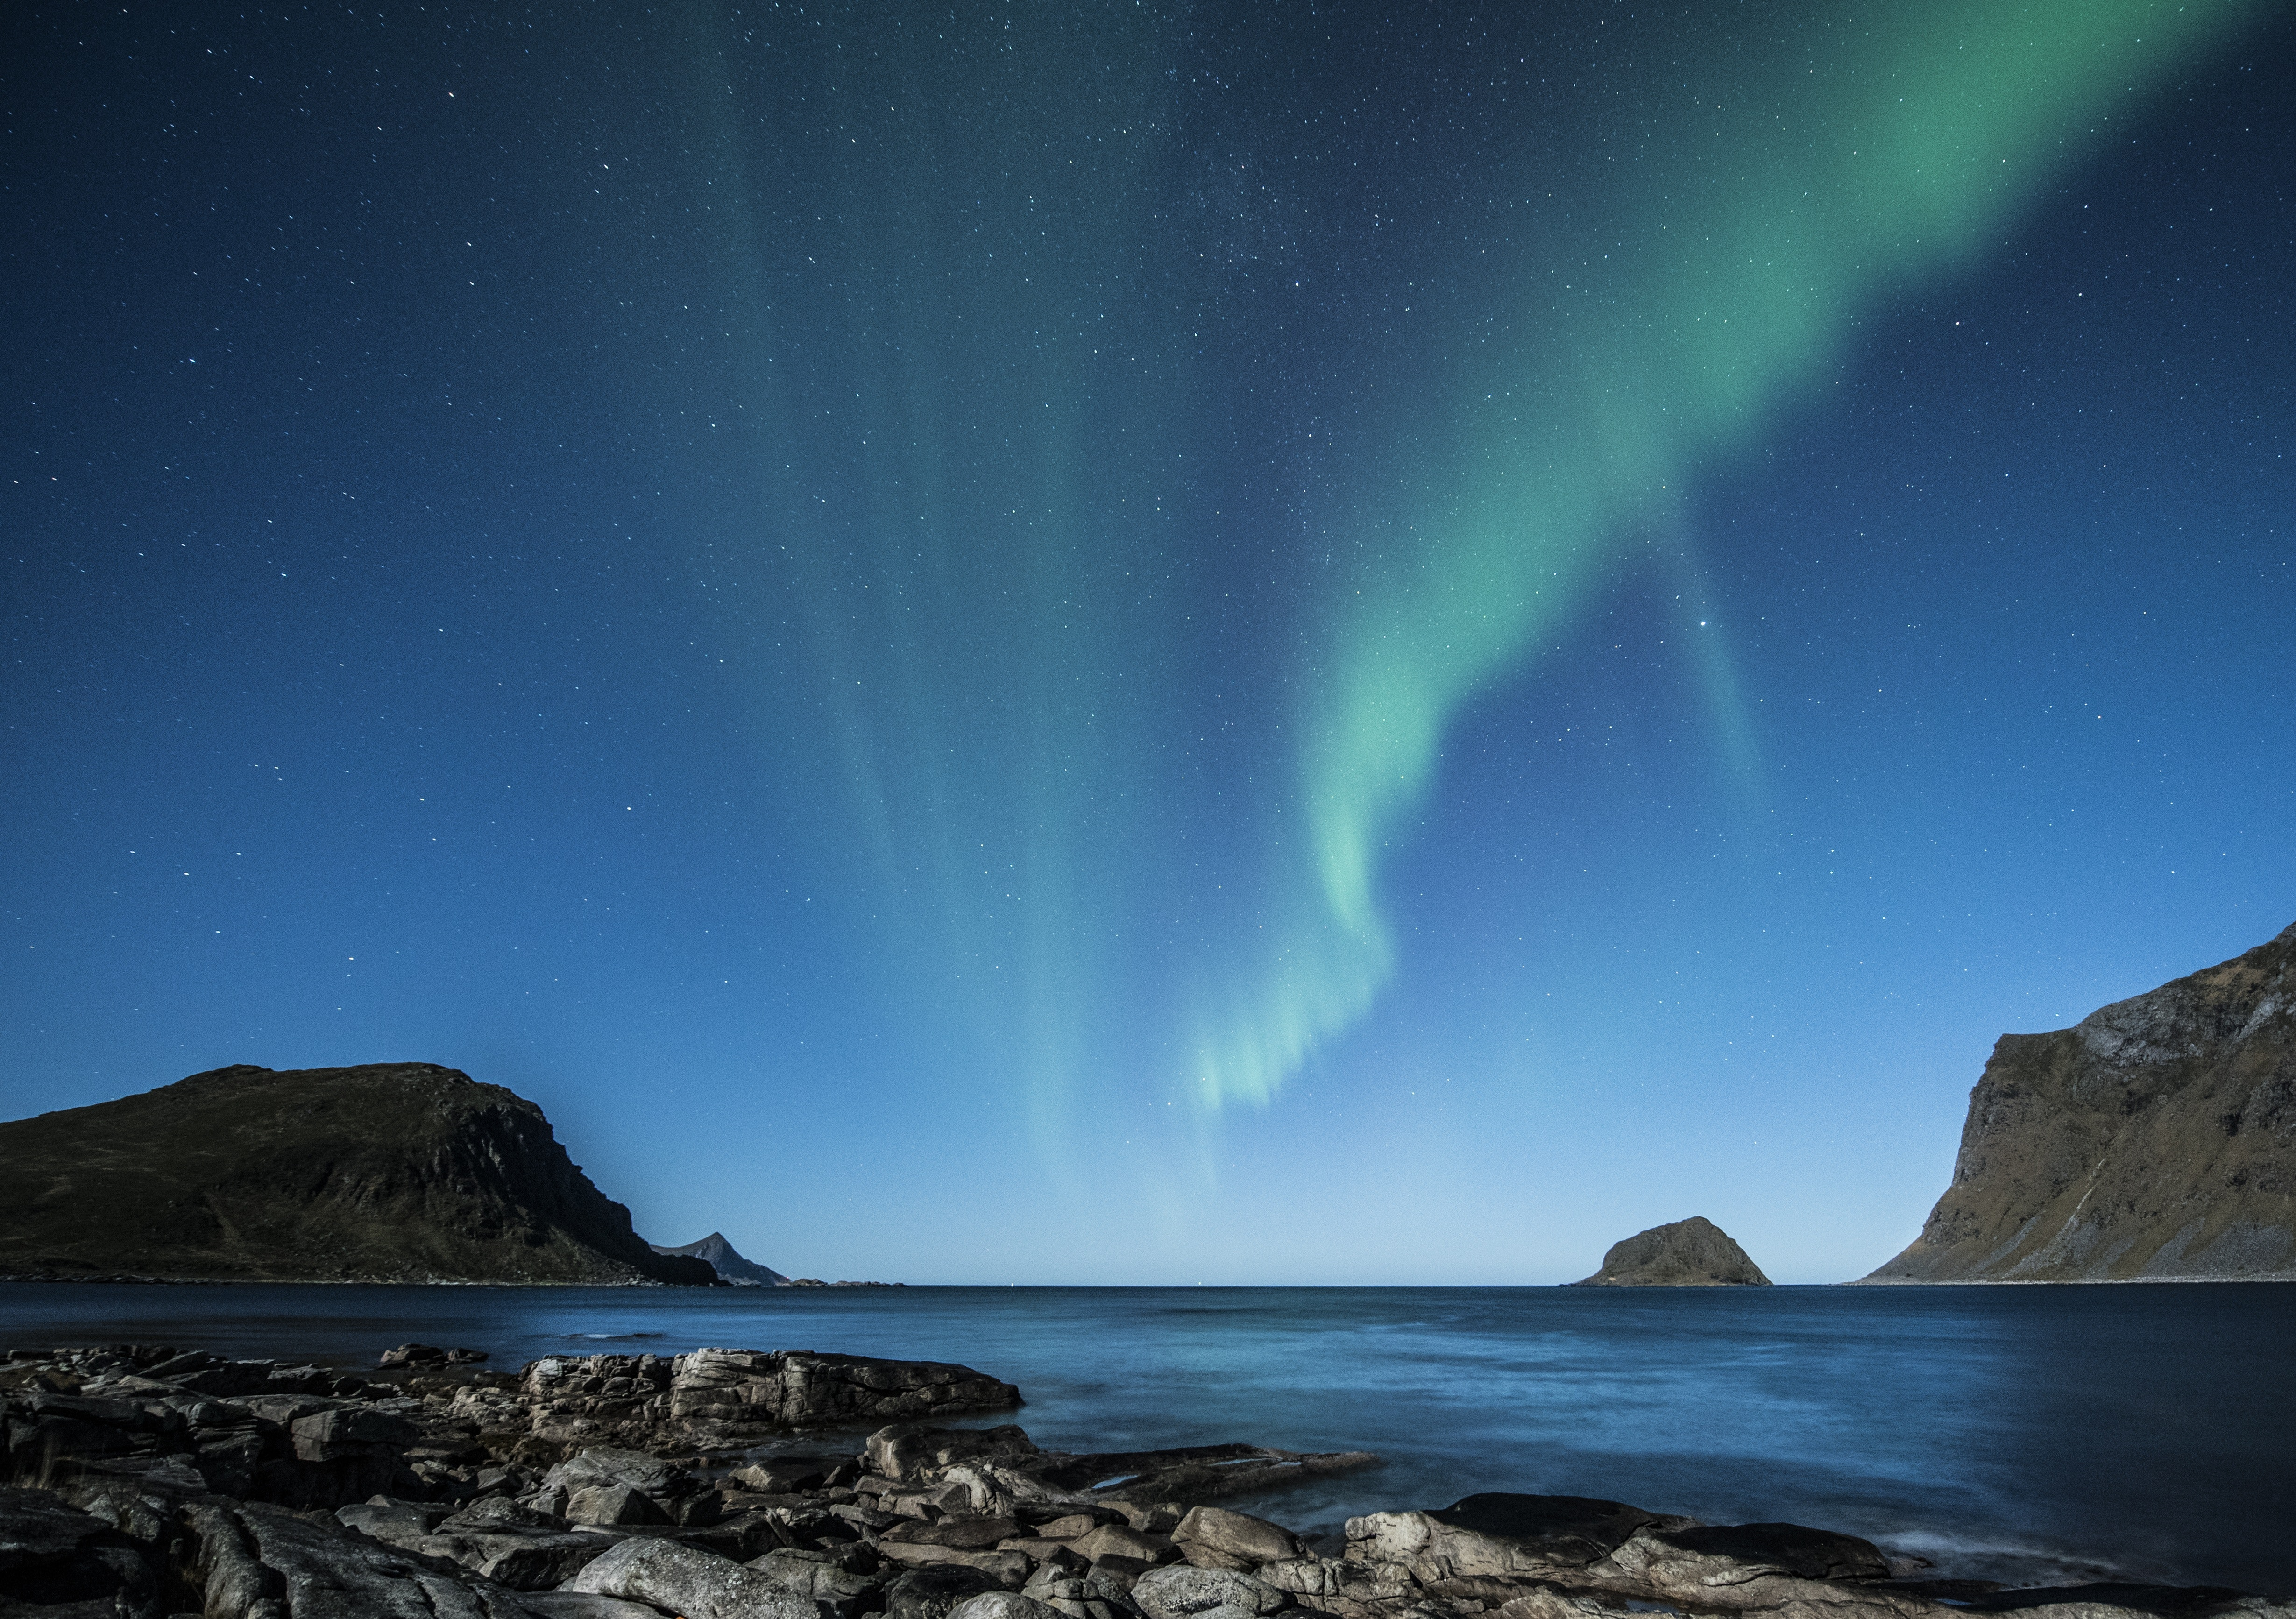 Green Aurora Lights Above Body Of Water 183 Free Stock Photo